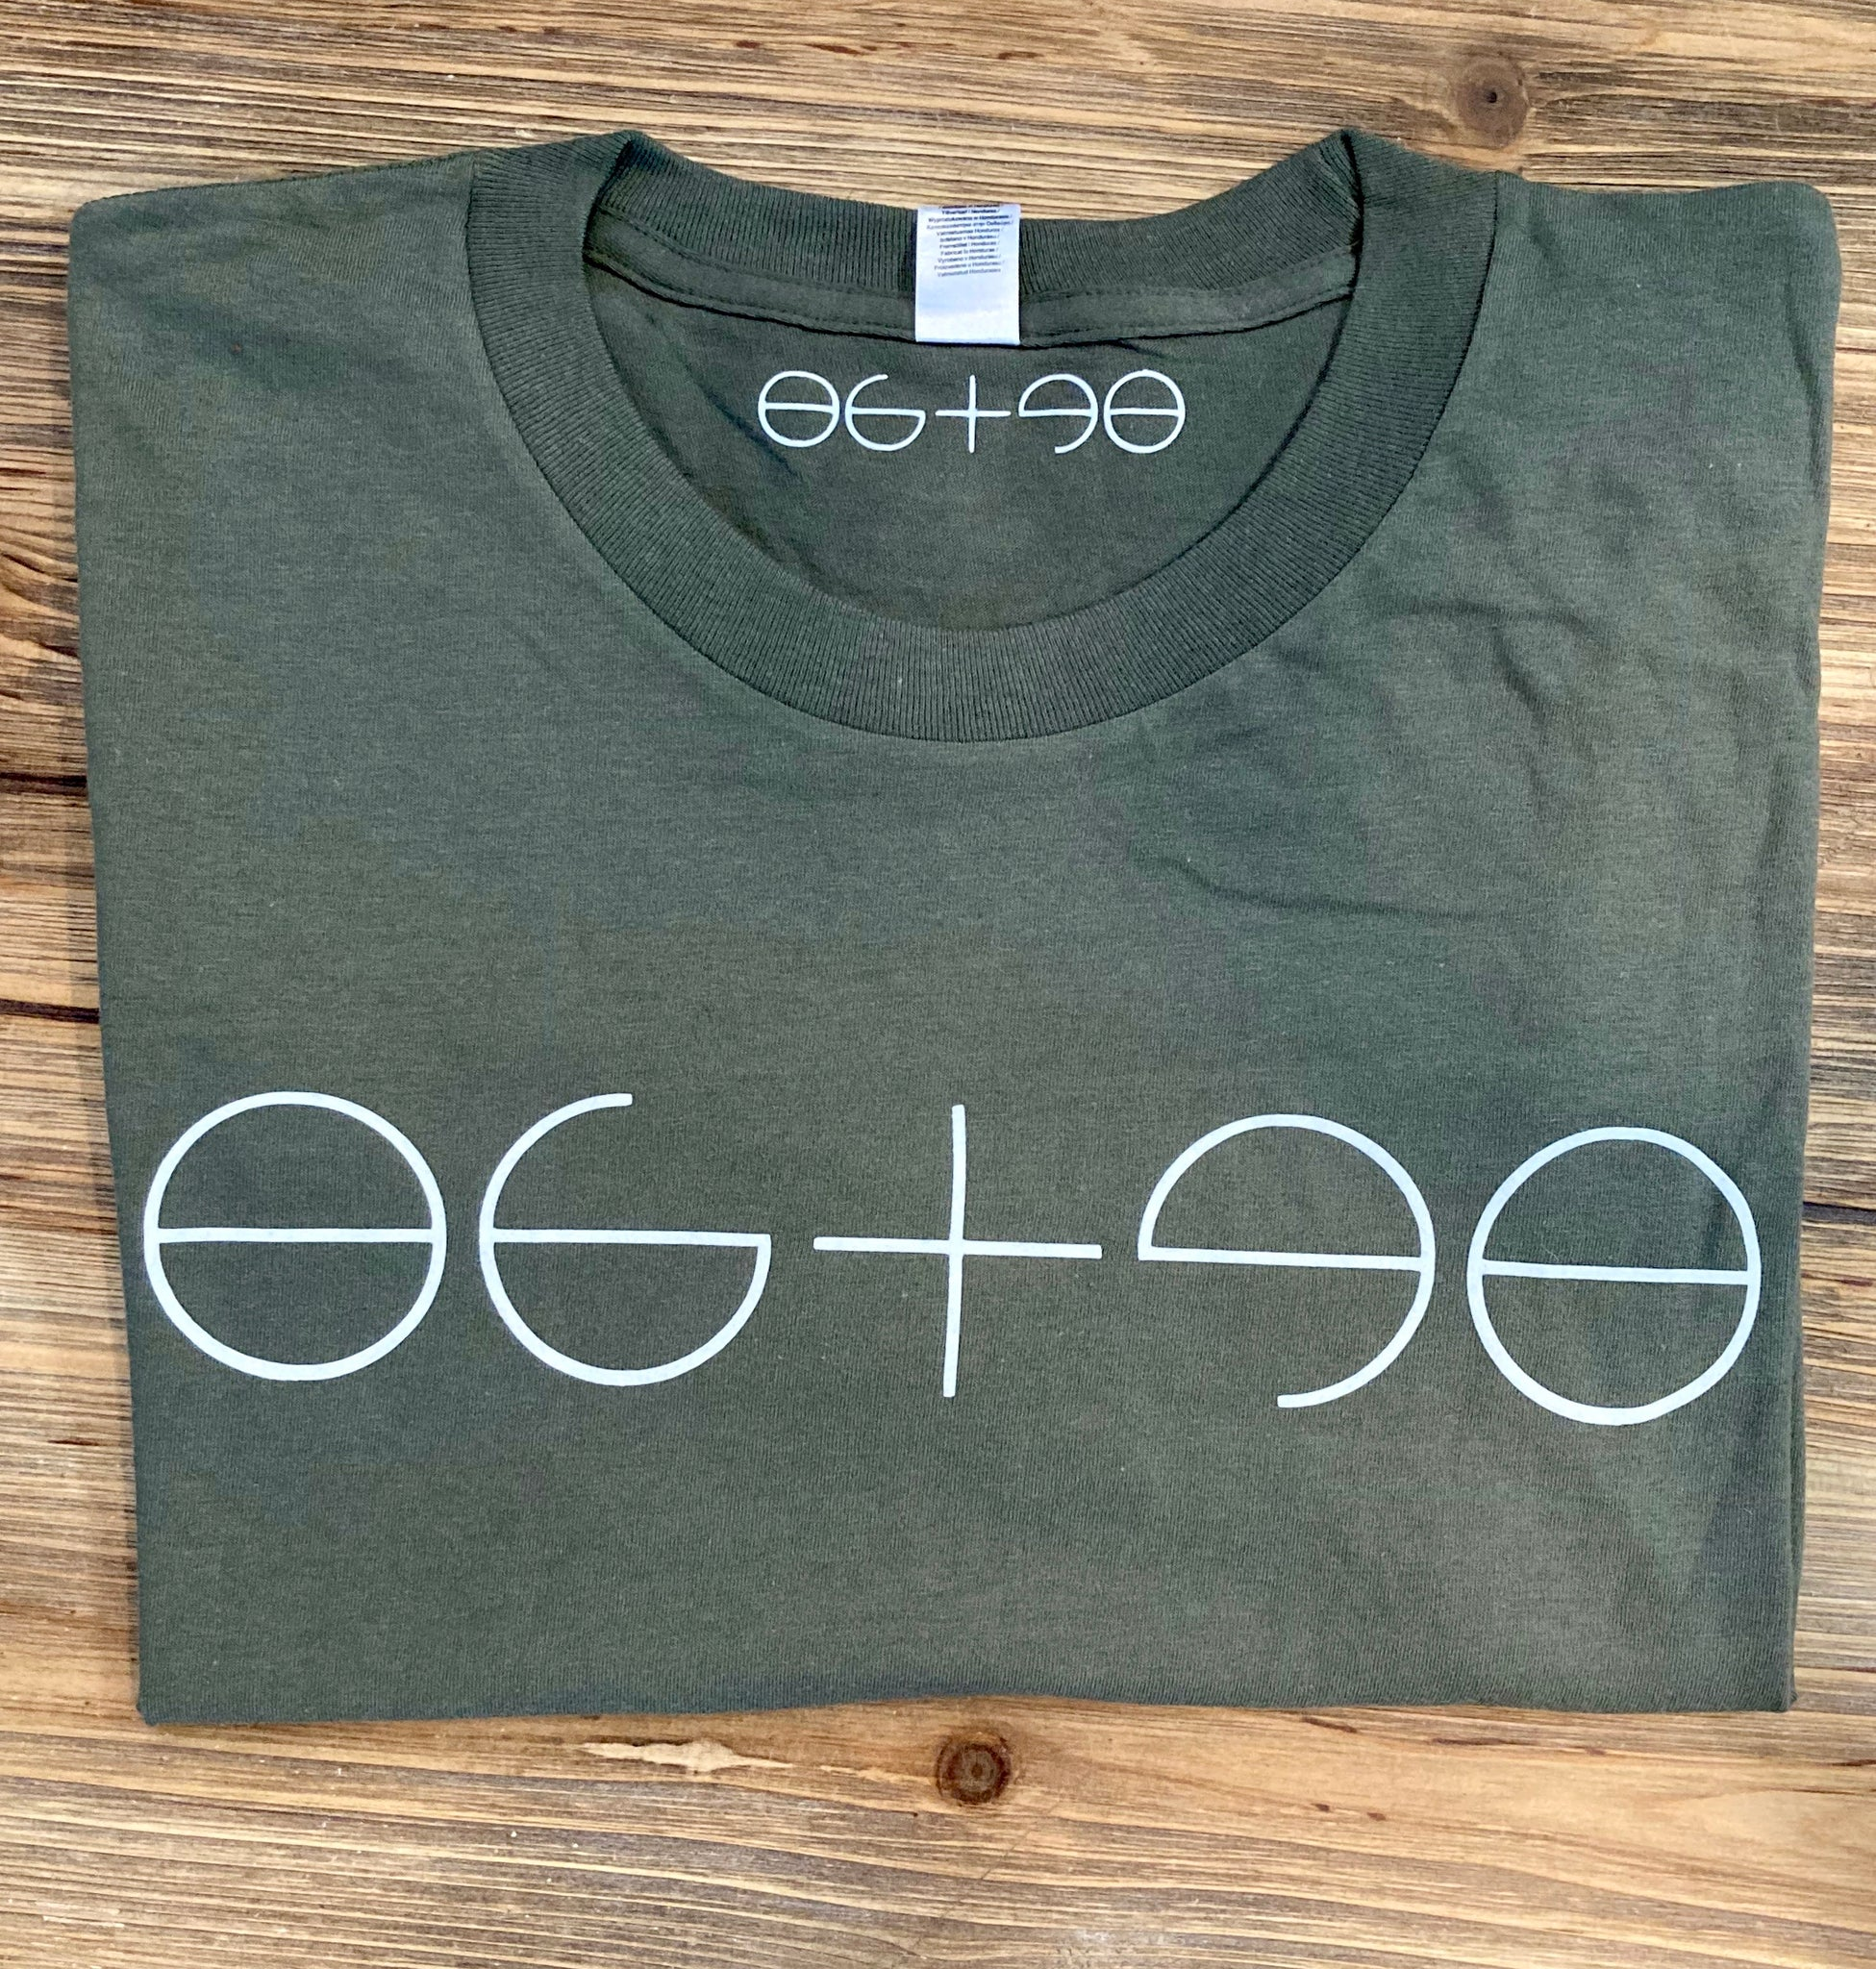 Camiseta - El 86 (Men's)